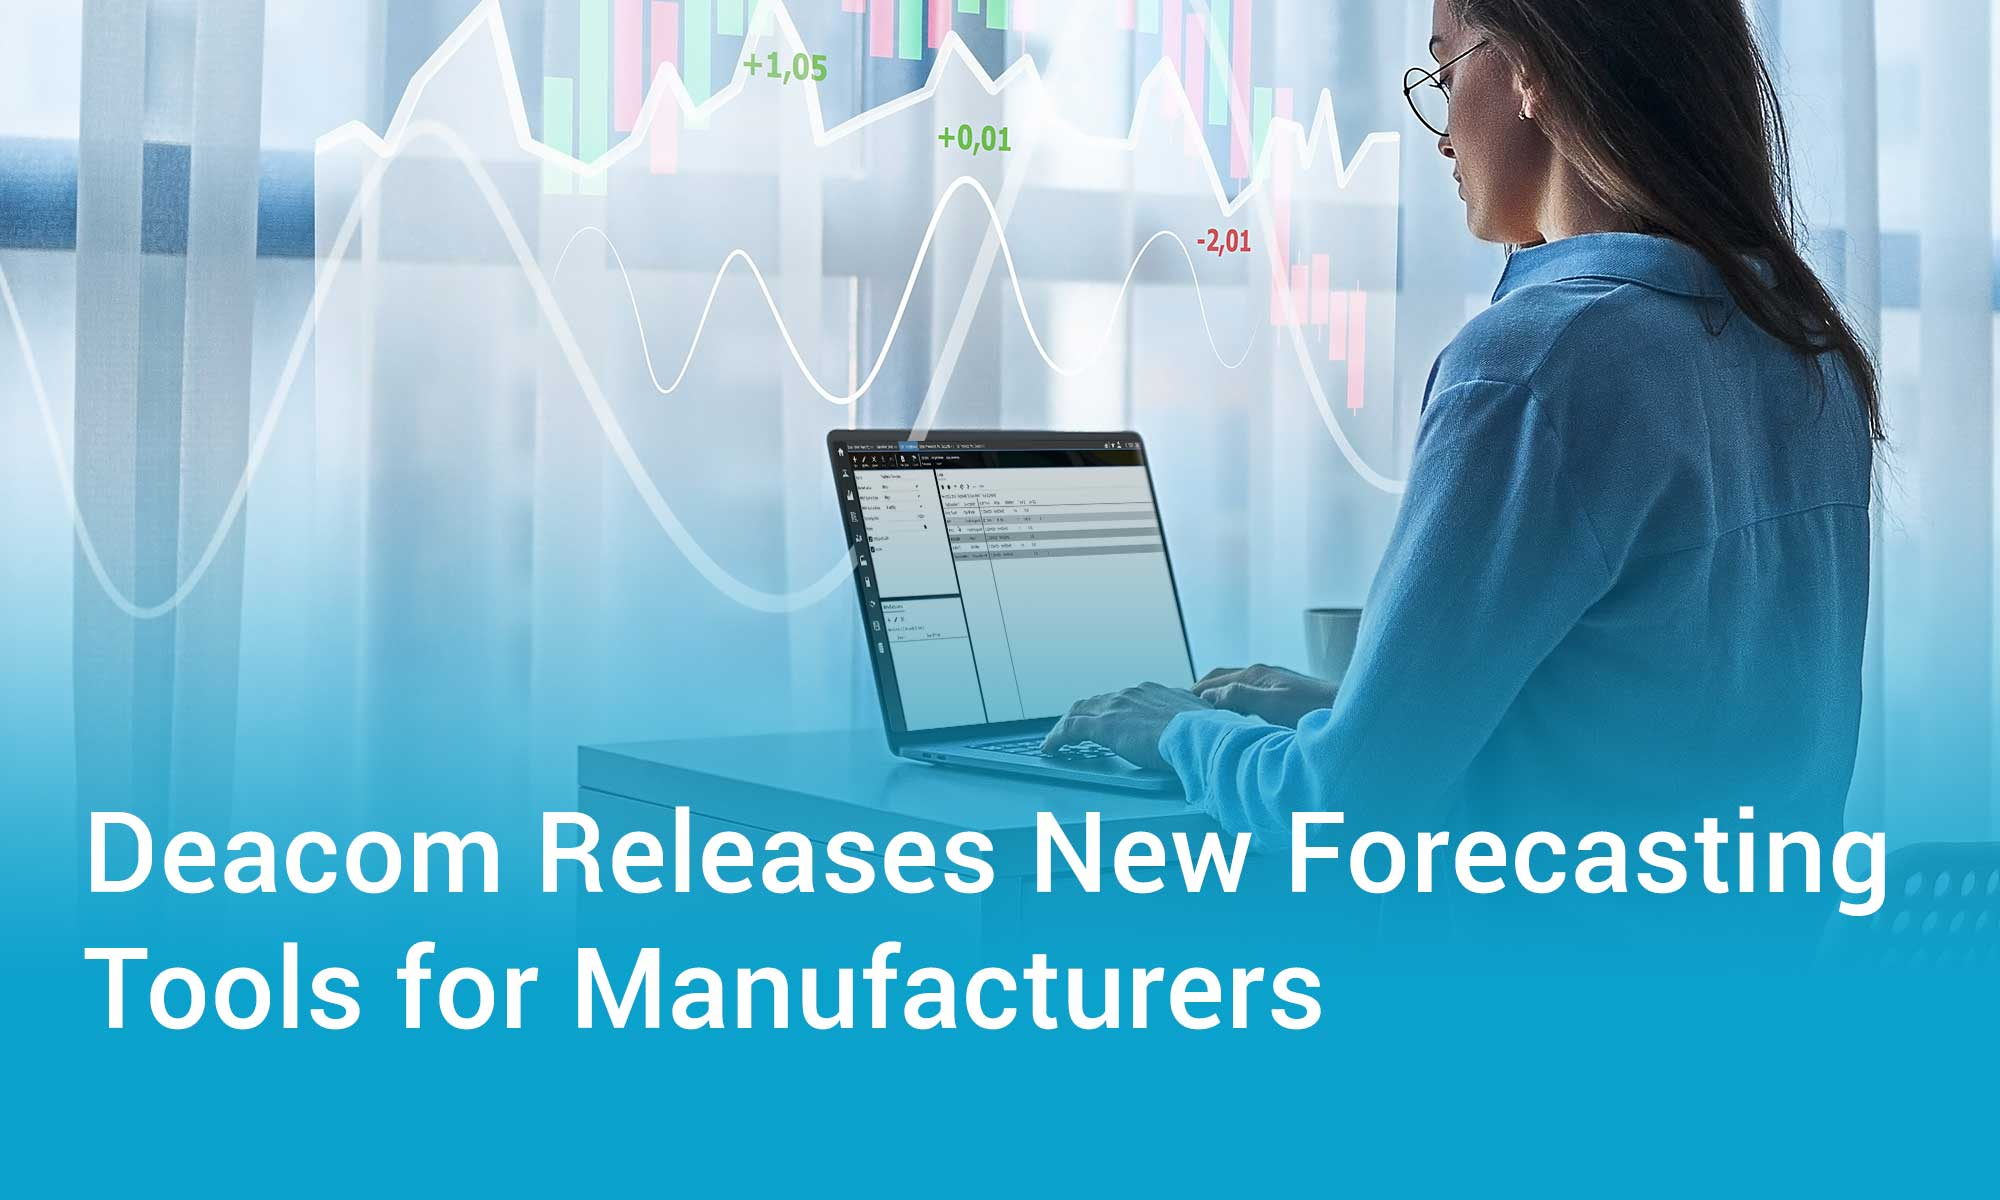 Deacom Releases New Forecasting Tools for Manufacturers